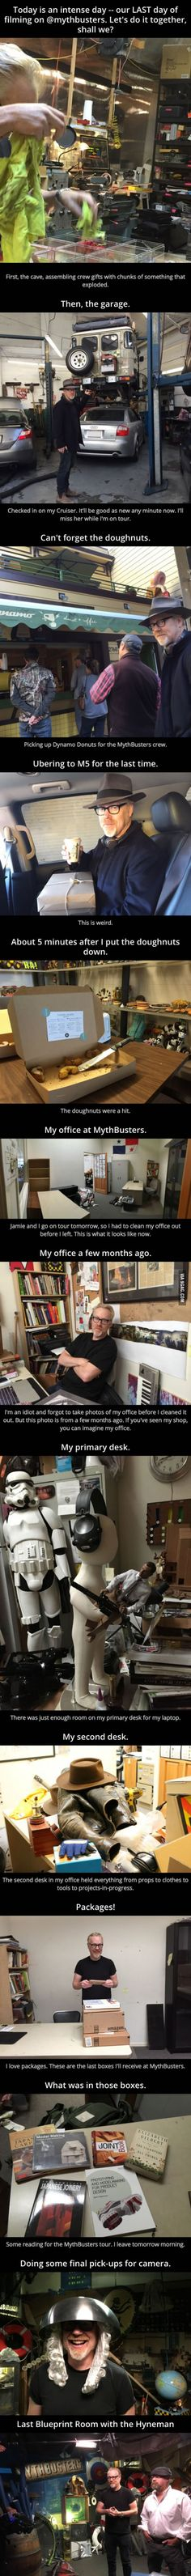 Adam Savage's Last Day at MythBusters  This made me cry. :((